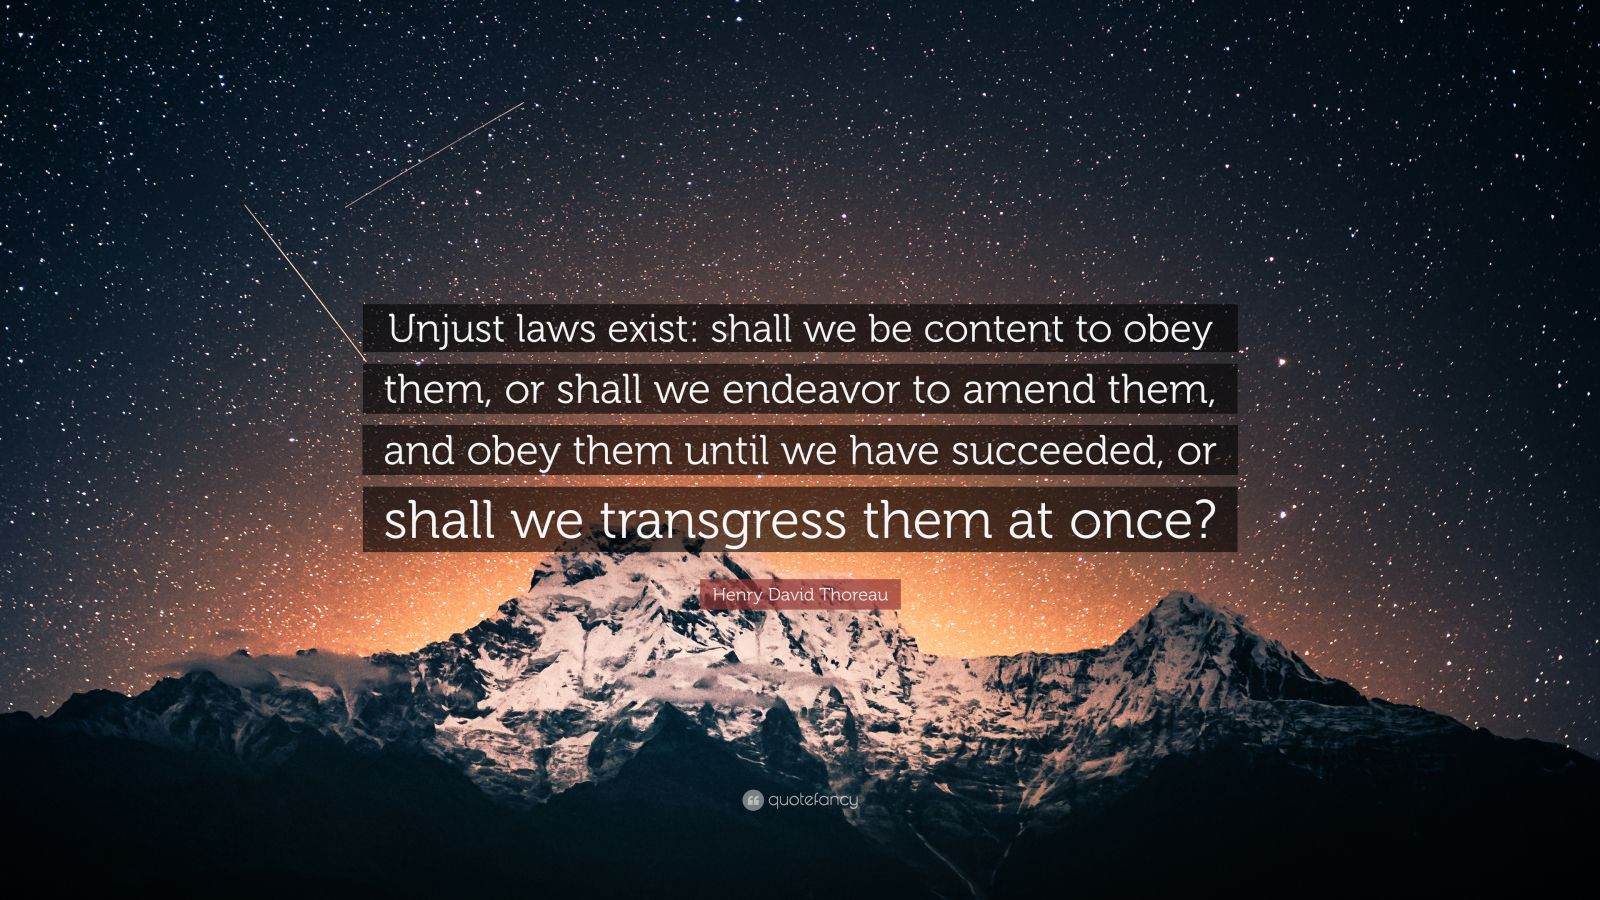 Emerson and unjust laws